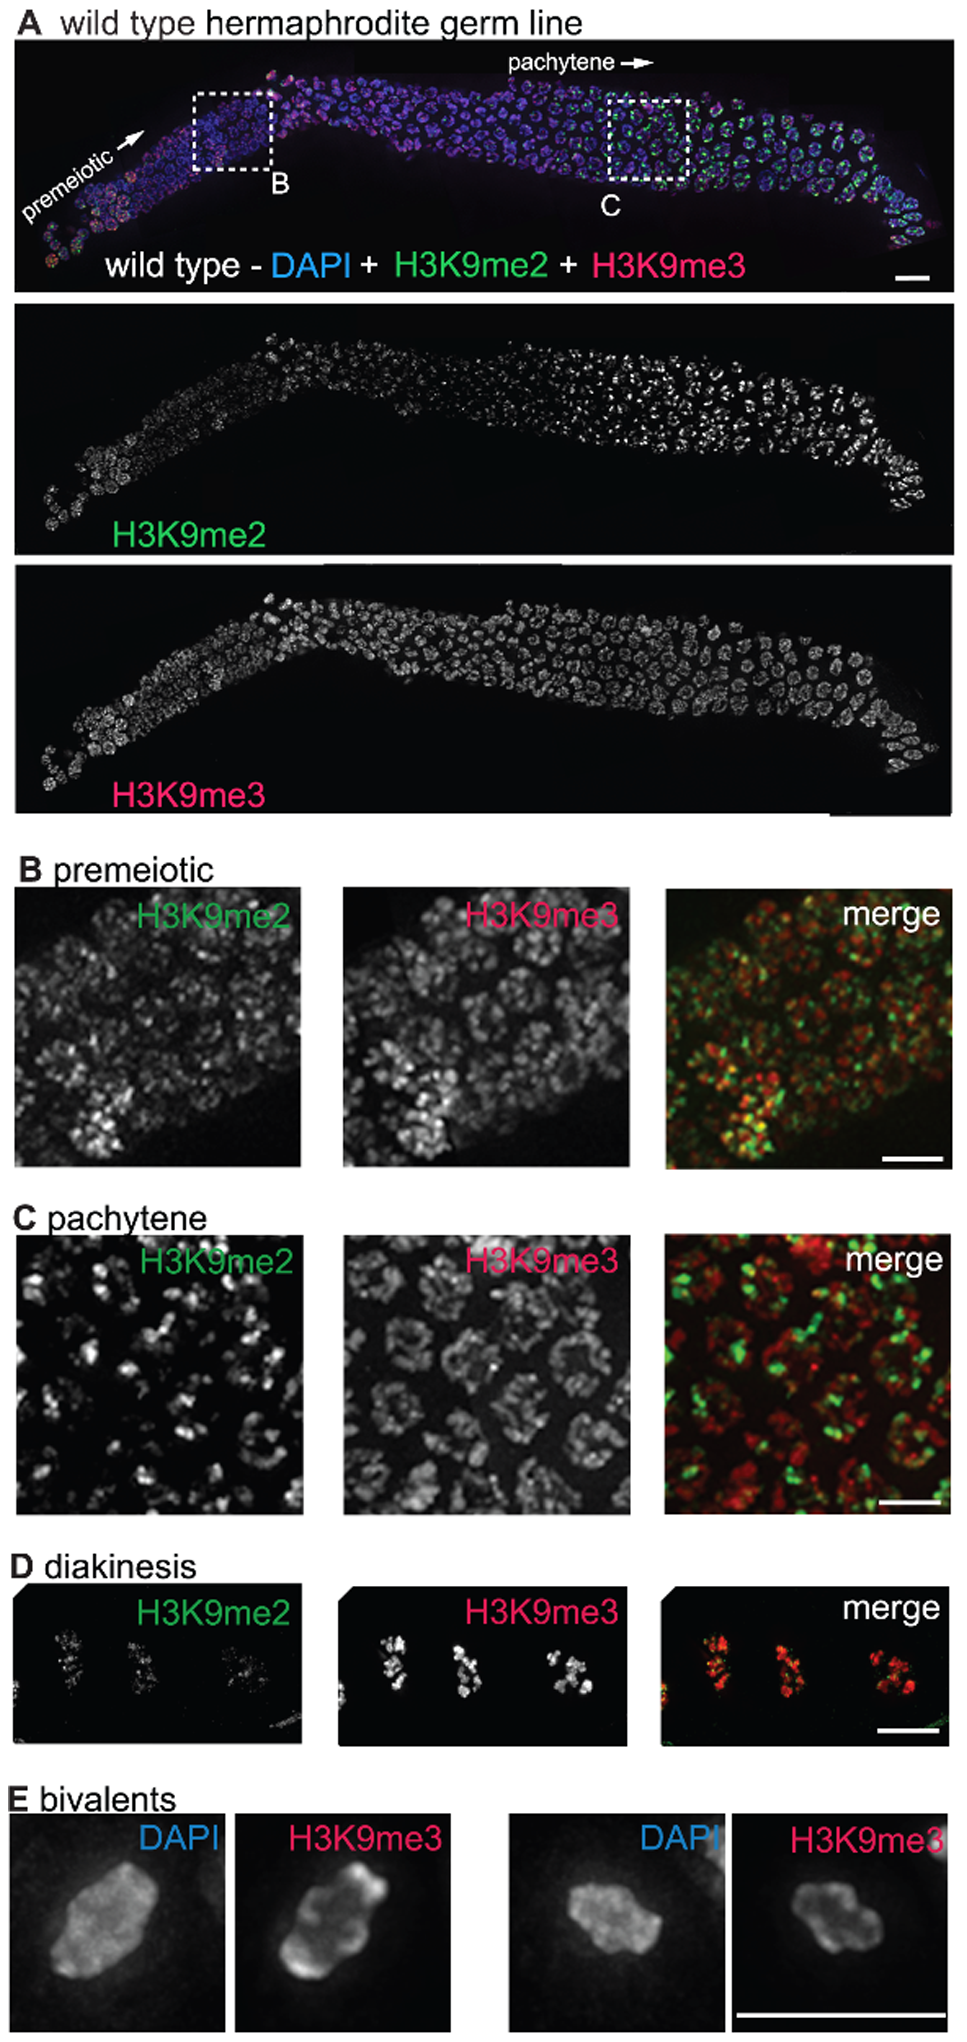 H3K9me2 and H3K9me3 localization in the adult hermaphrodite germ line.